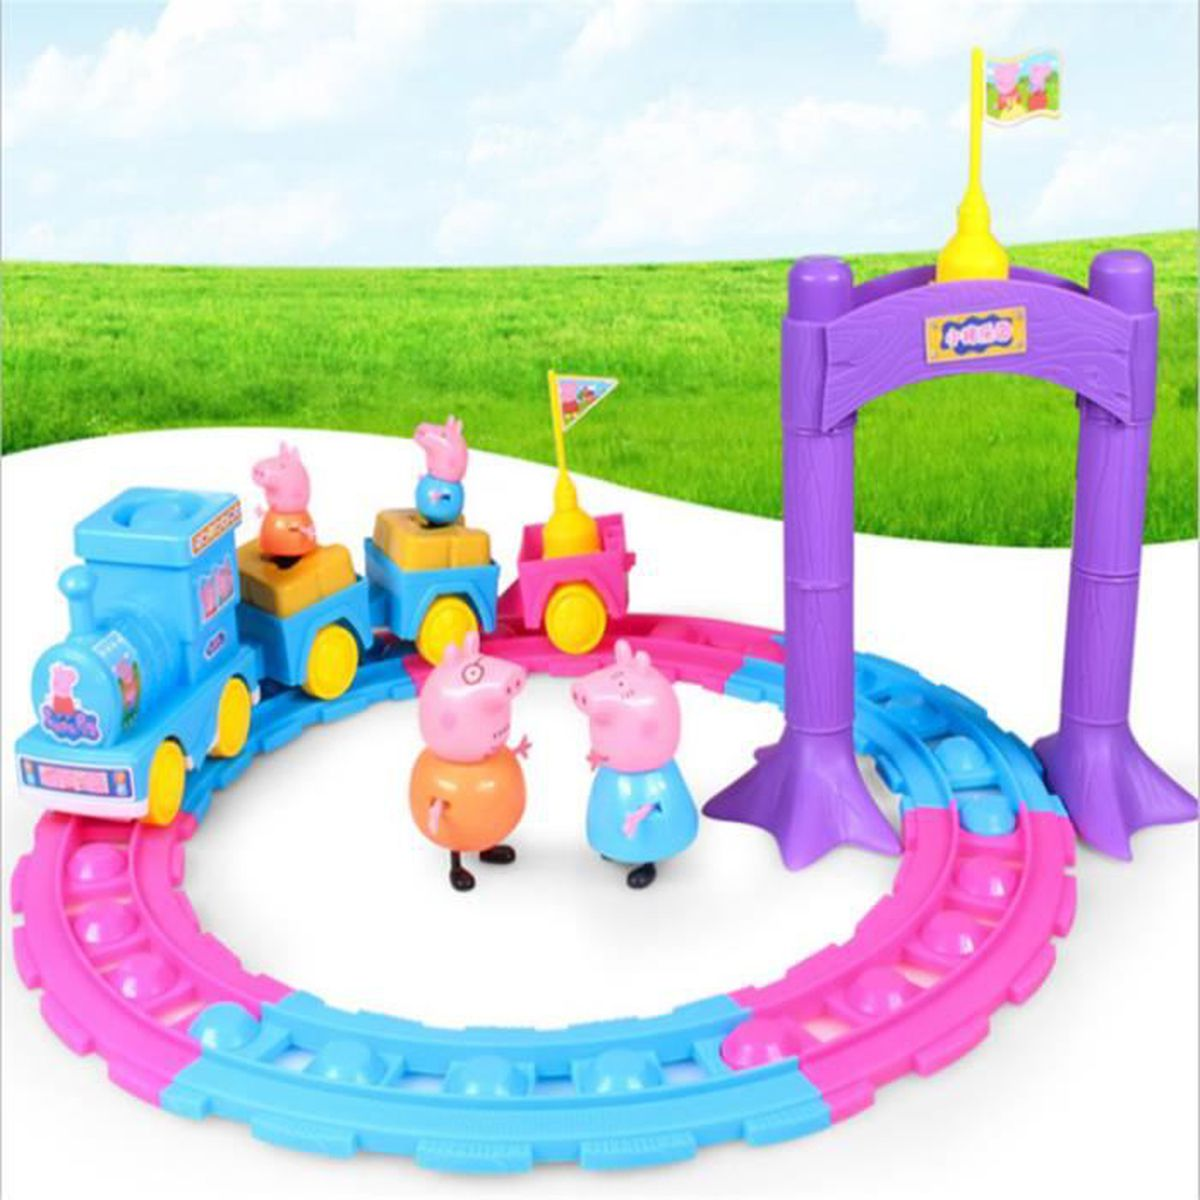 peppa pig locomotives de chemin de fer achat vente maison m nage cdiscount. Black Bedroom Furniture Sets. Home Design Ideas